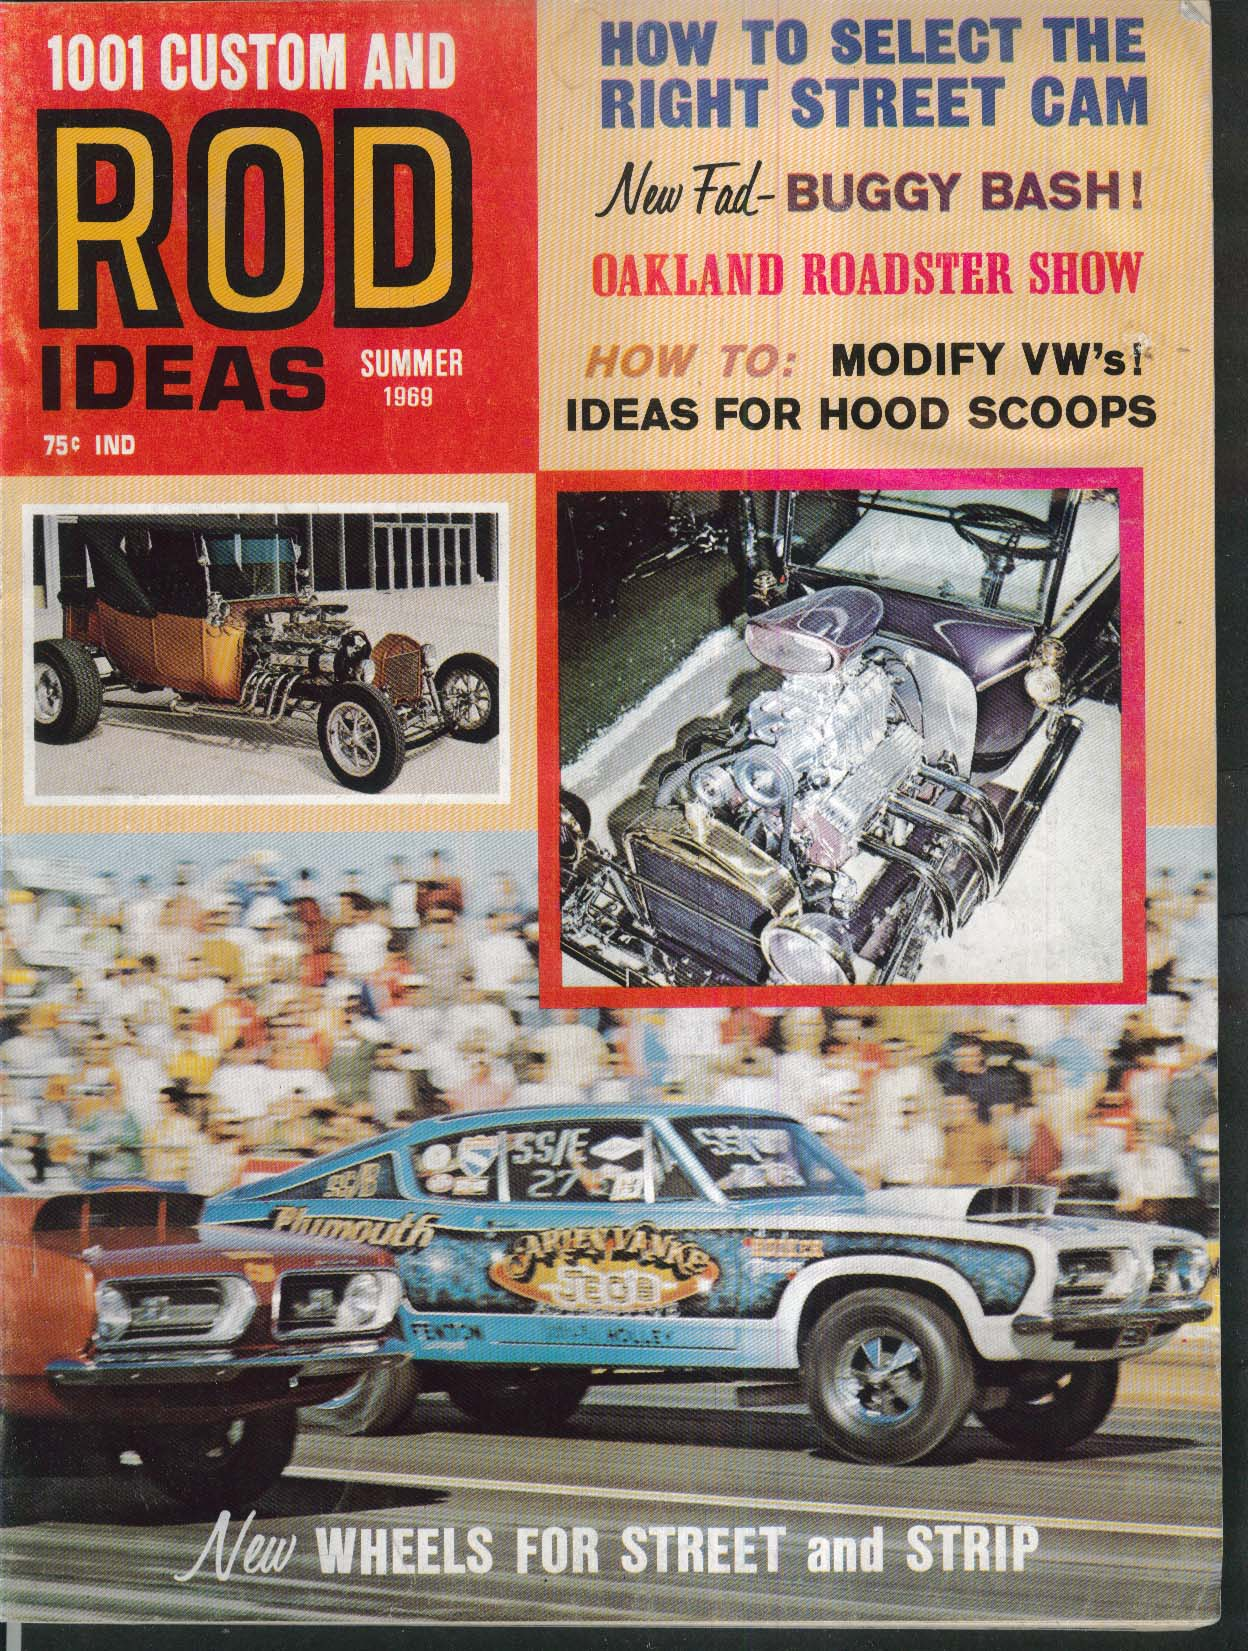 1001 CUSTOM & ROD IDEAS Volkswagen Modifications Oakland Roadsters + Summer 1969